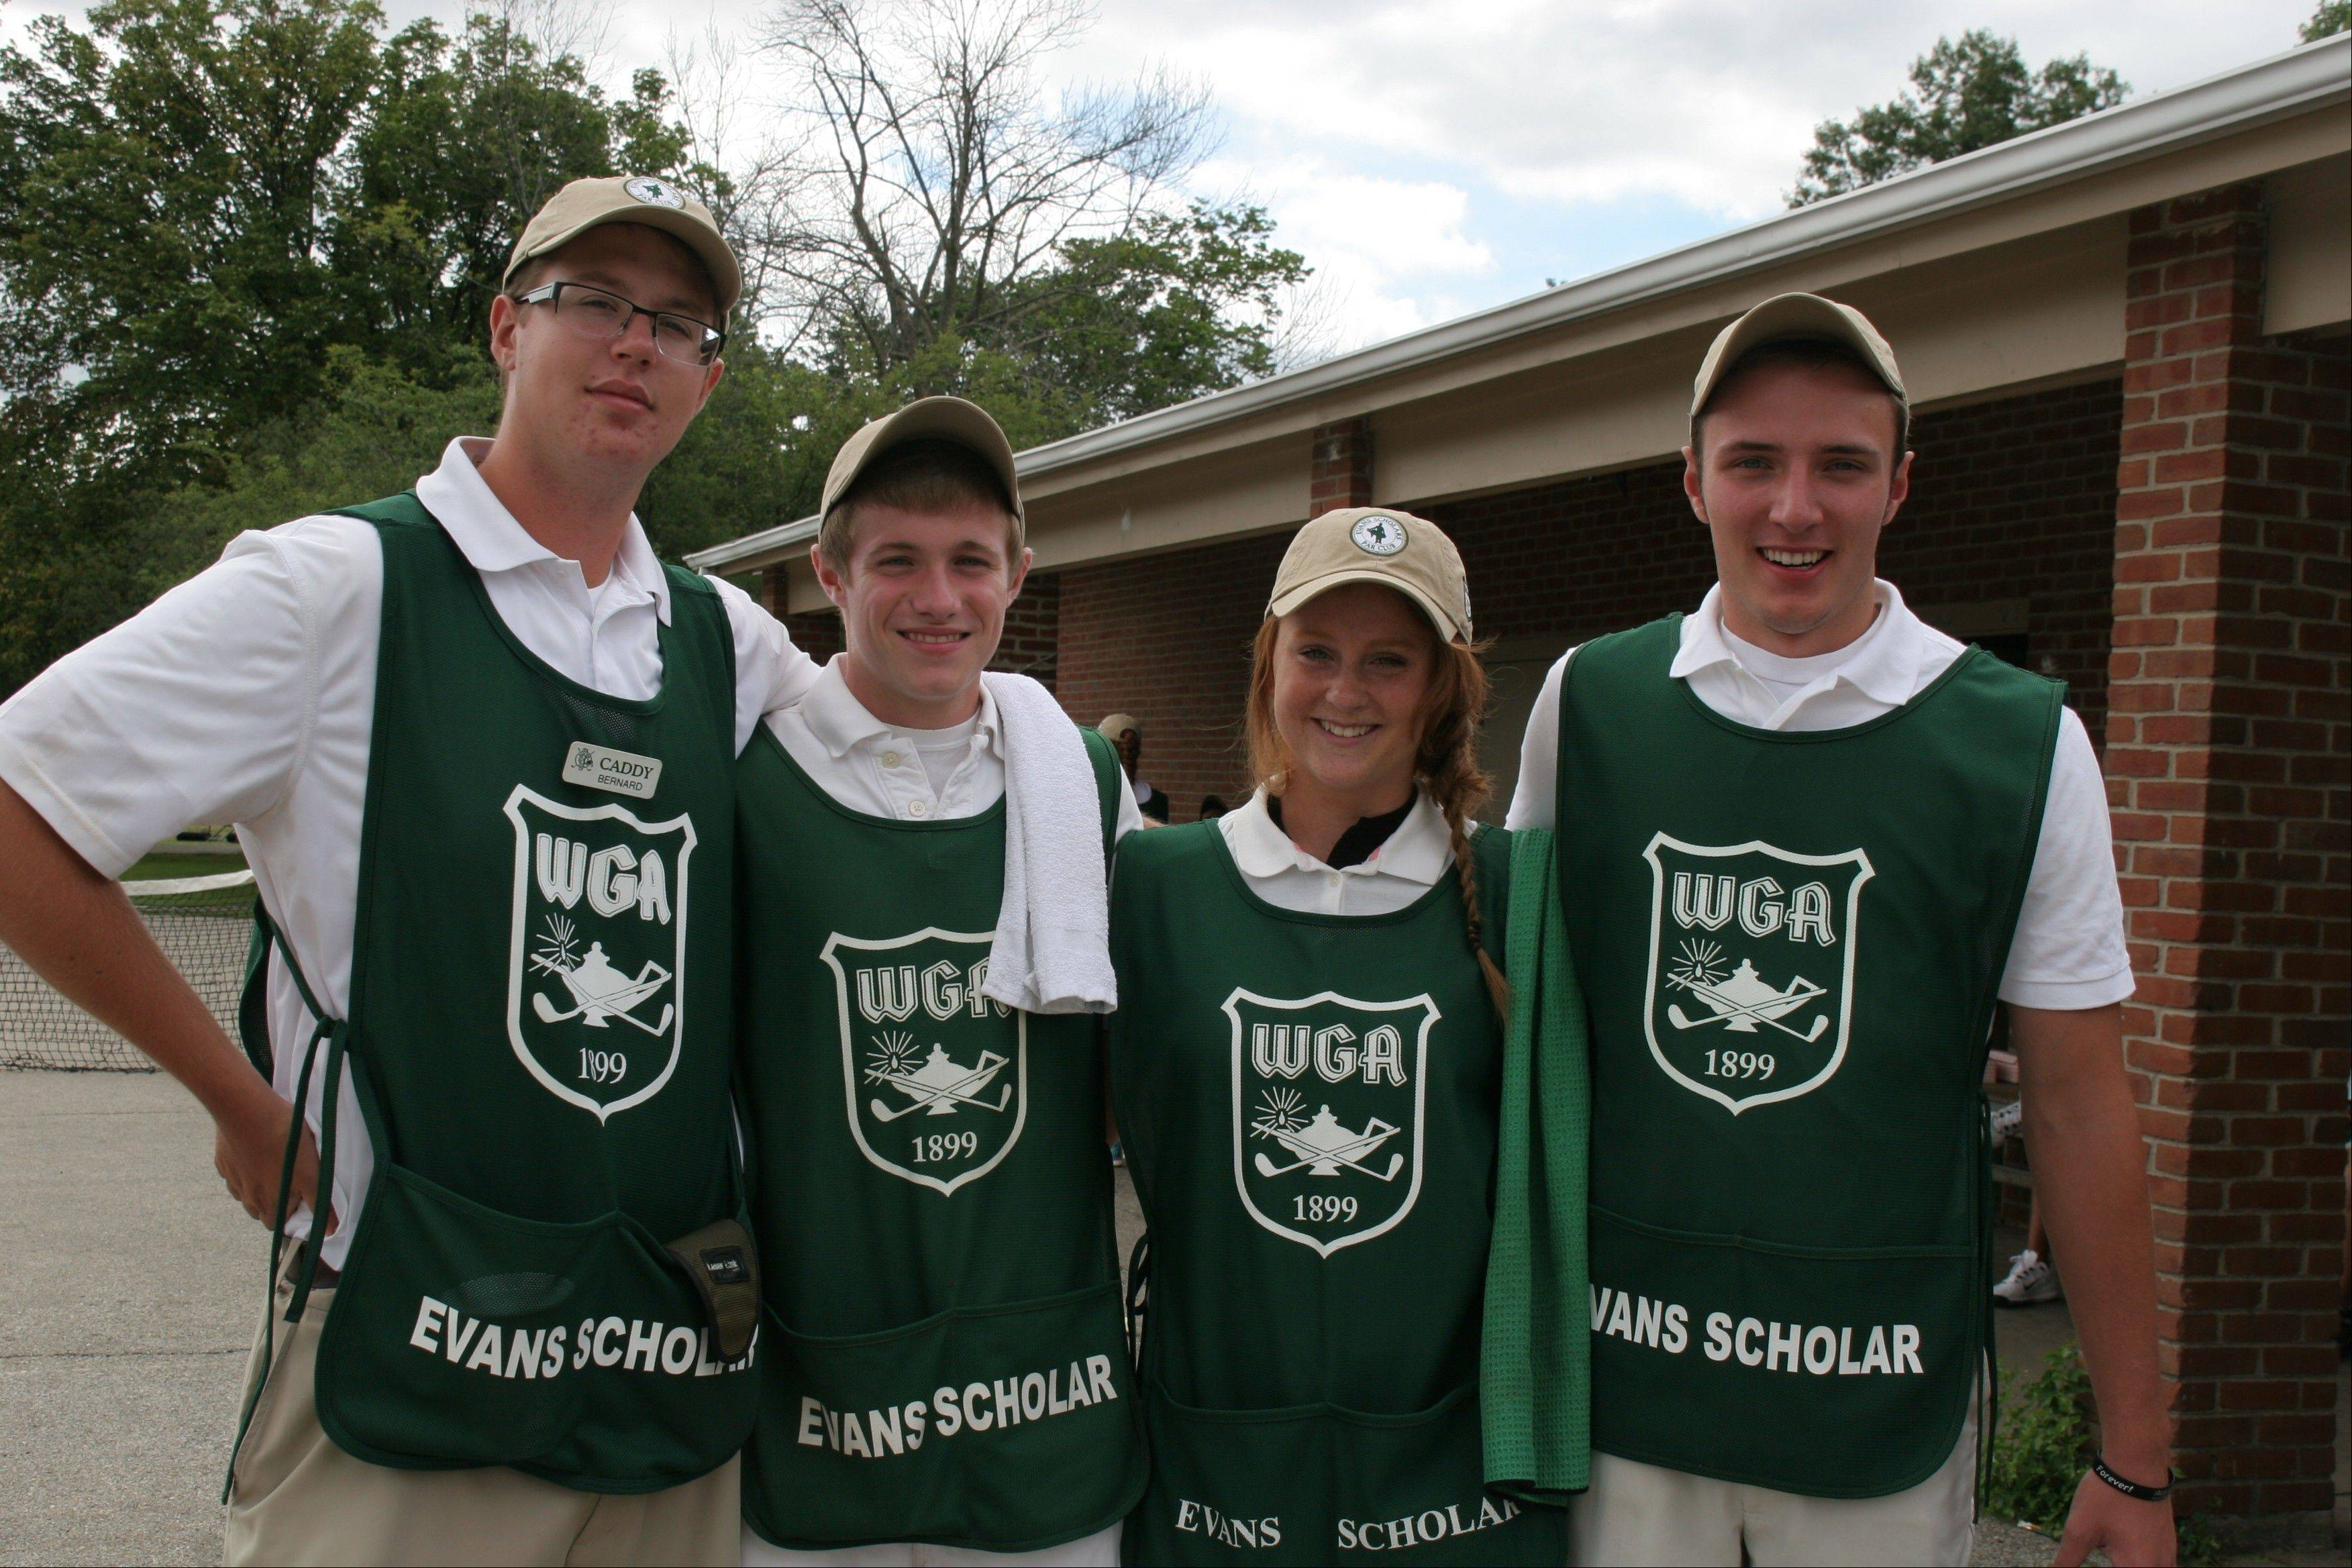 More than 9,000 caddies, including these shown here, have earned four-year Evans Scholarships with the help of the WGA since Chick Evans created the Evans Scholars Foundation in 1930.